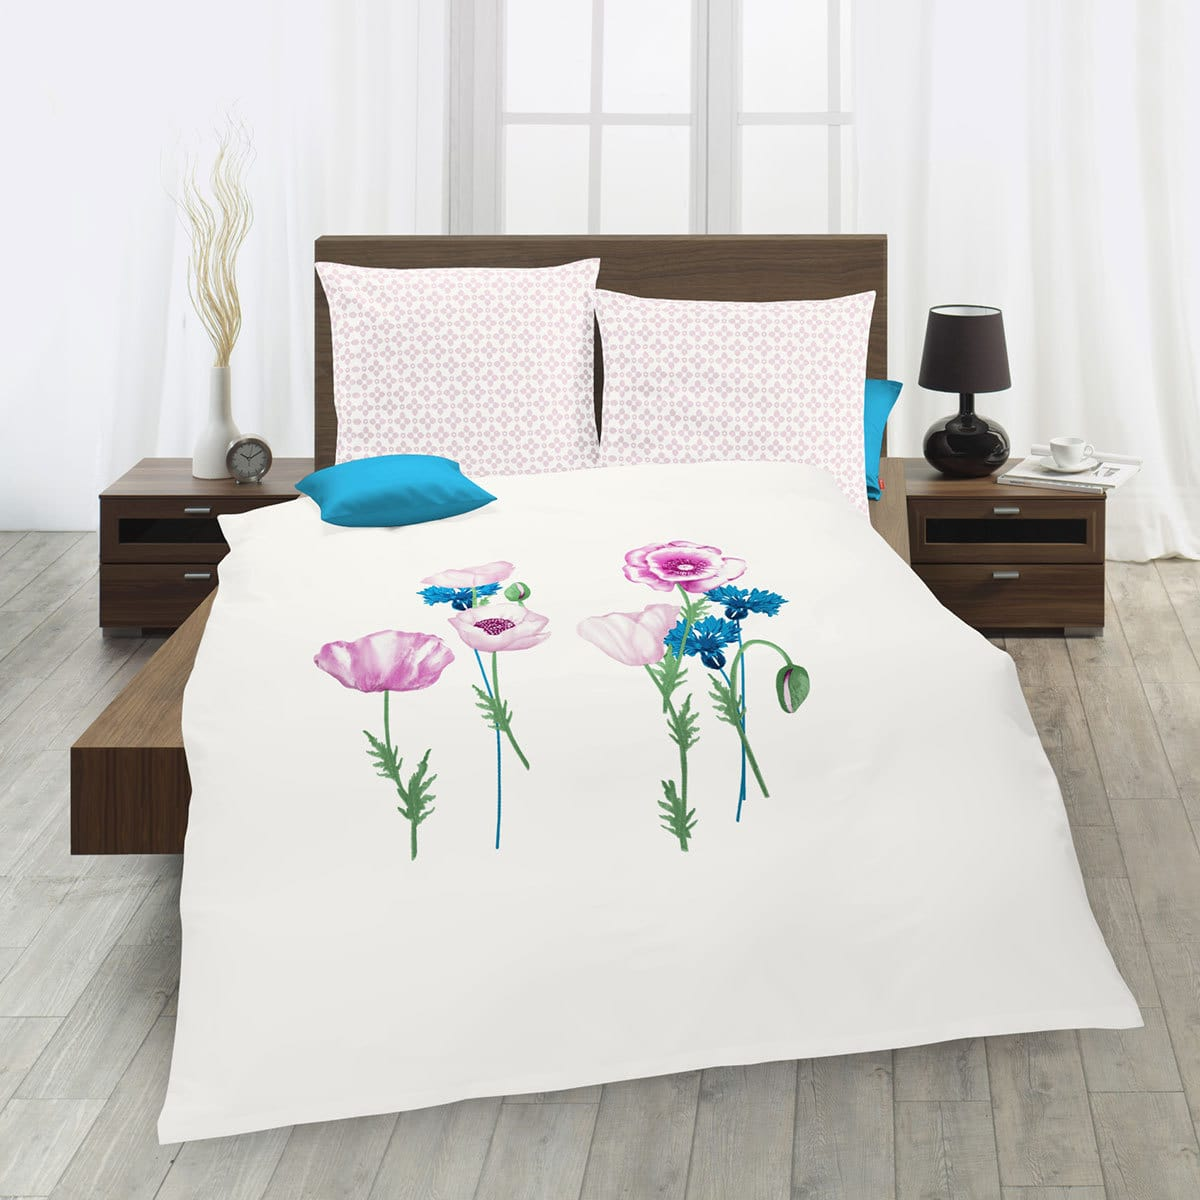 traumschlaf mako satin bettw sche mohnblume g nstig online kaufen bei bettwaren shop. Black Bedroom Furniture Sets. Home Design Ideas